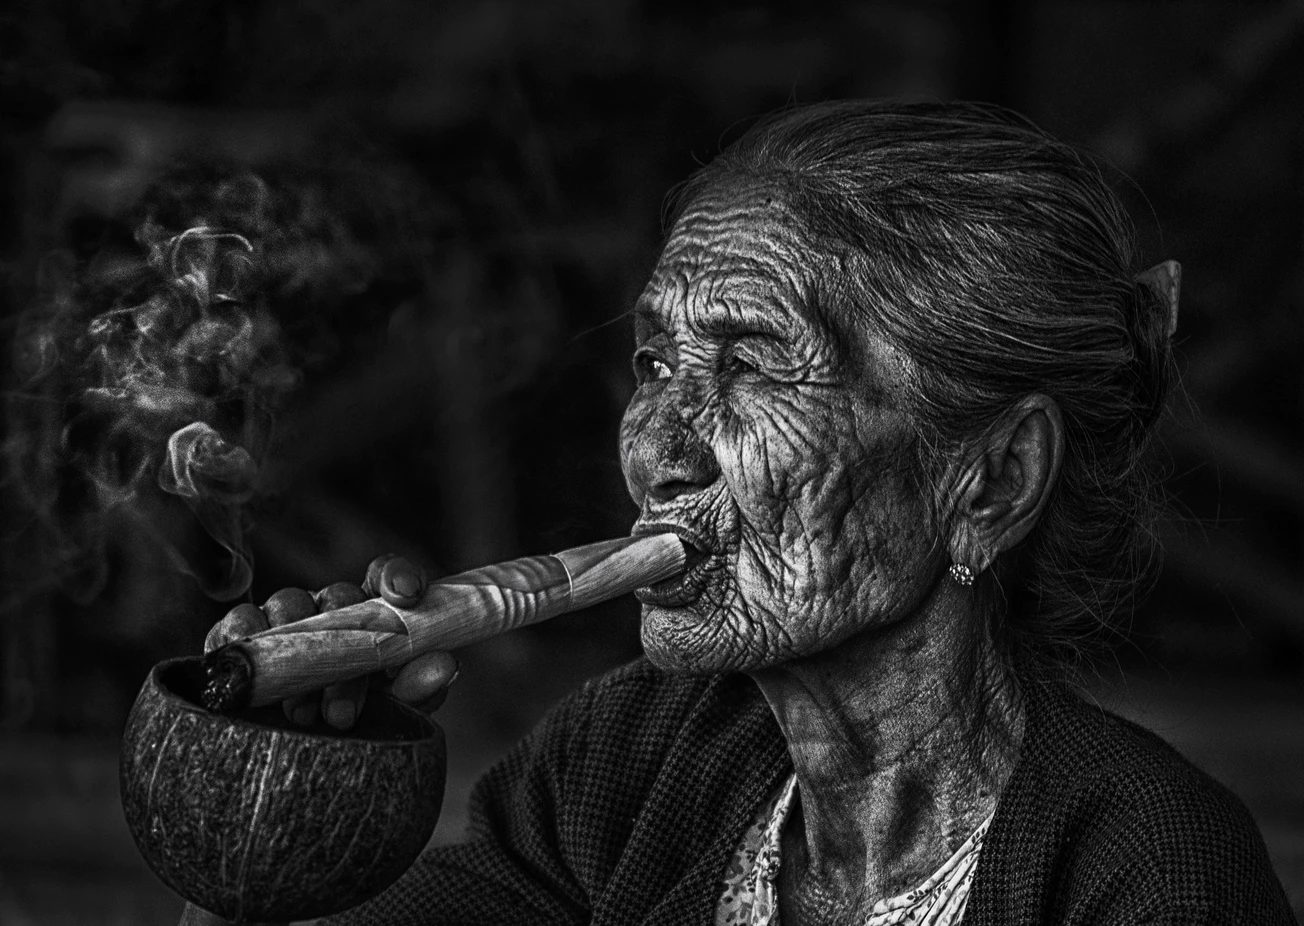 elderly Native American woman showing how to smoke a joint